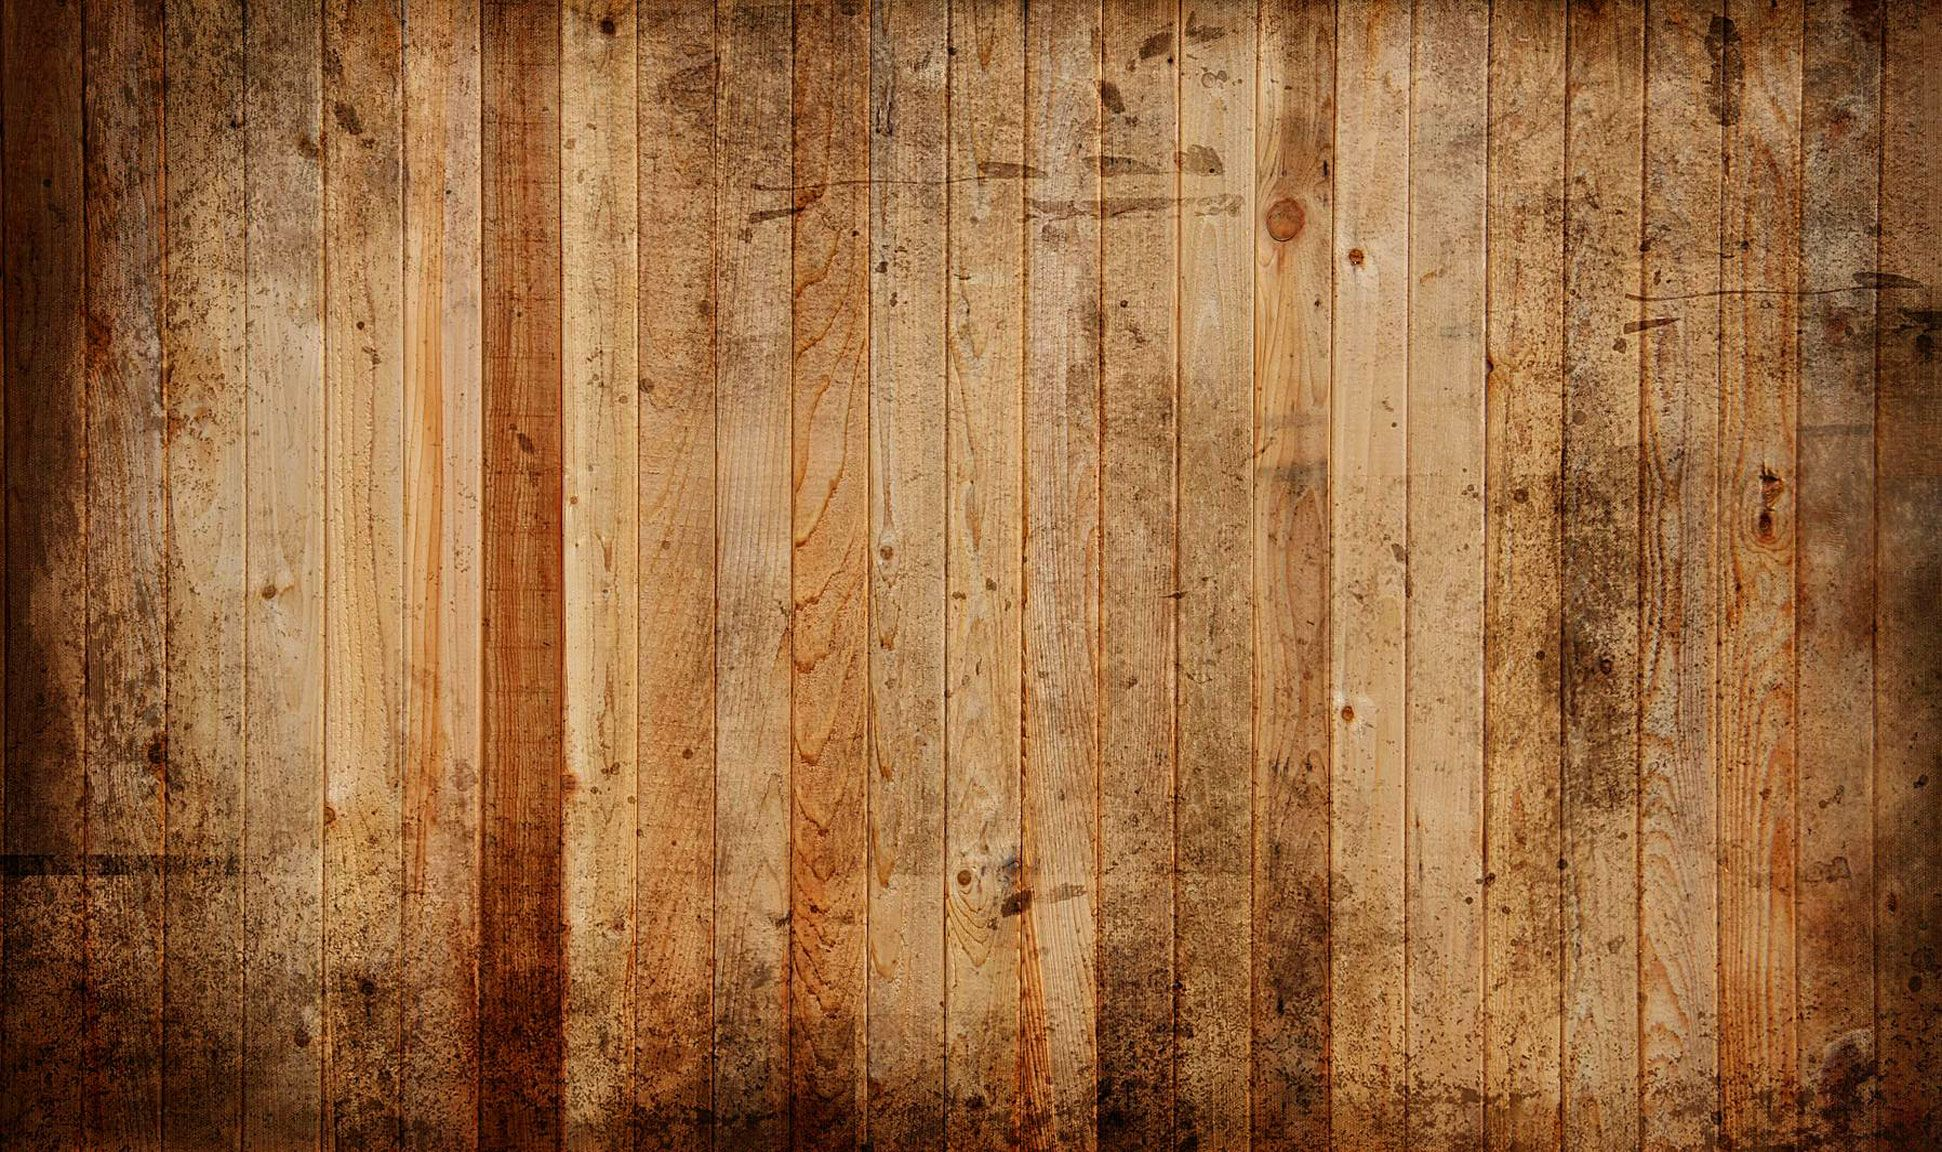 Rustic Barn Wood Background | Design | Pinterest | Wood background